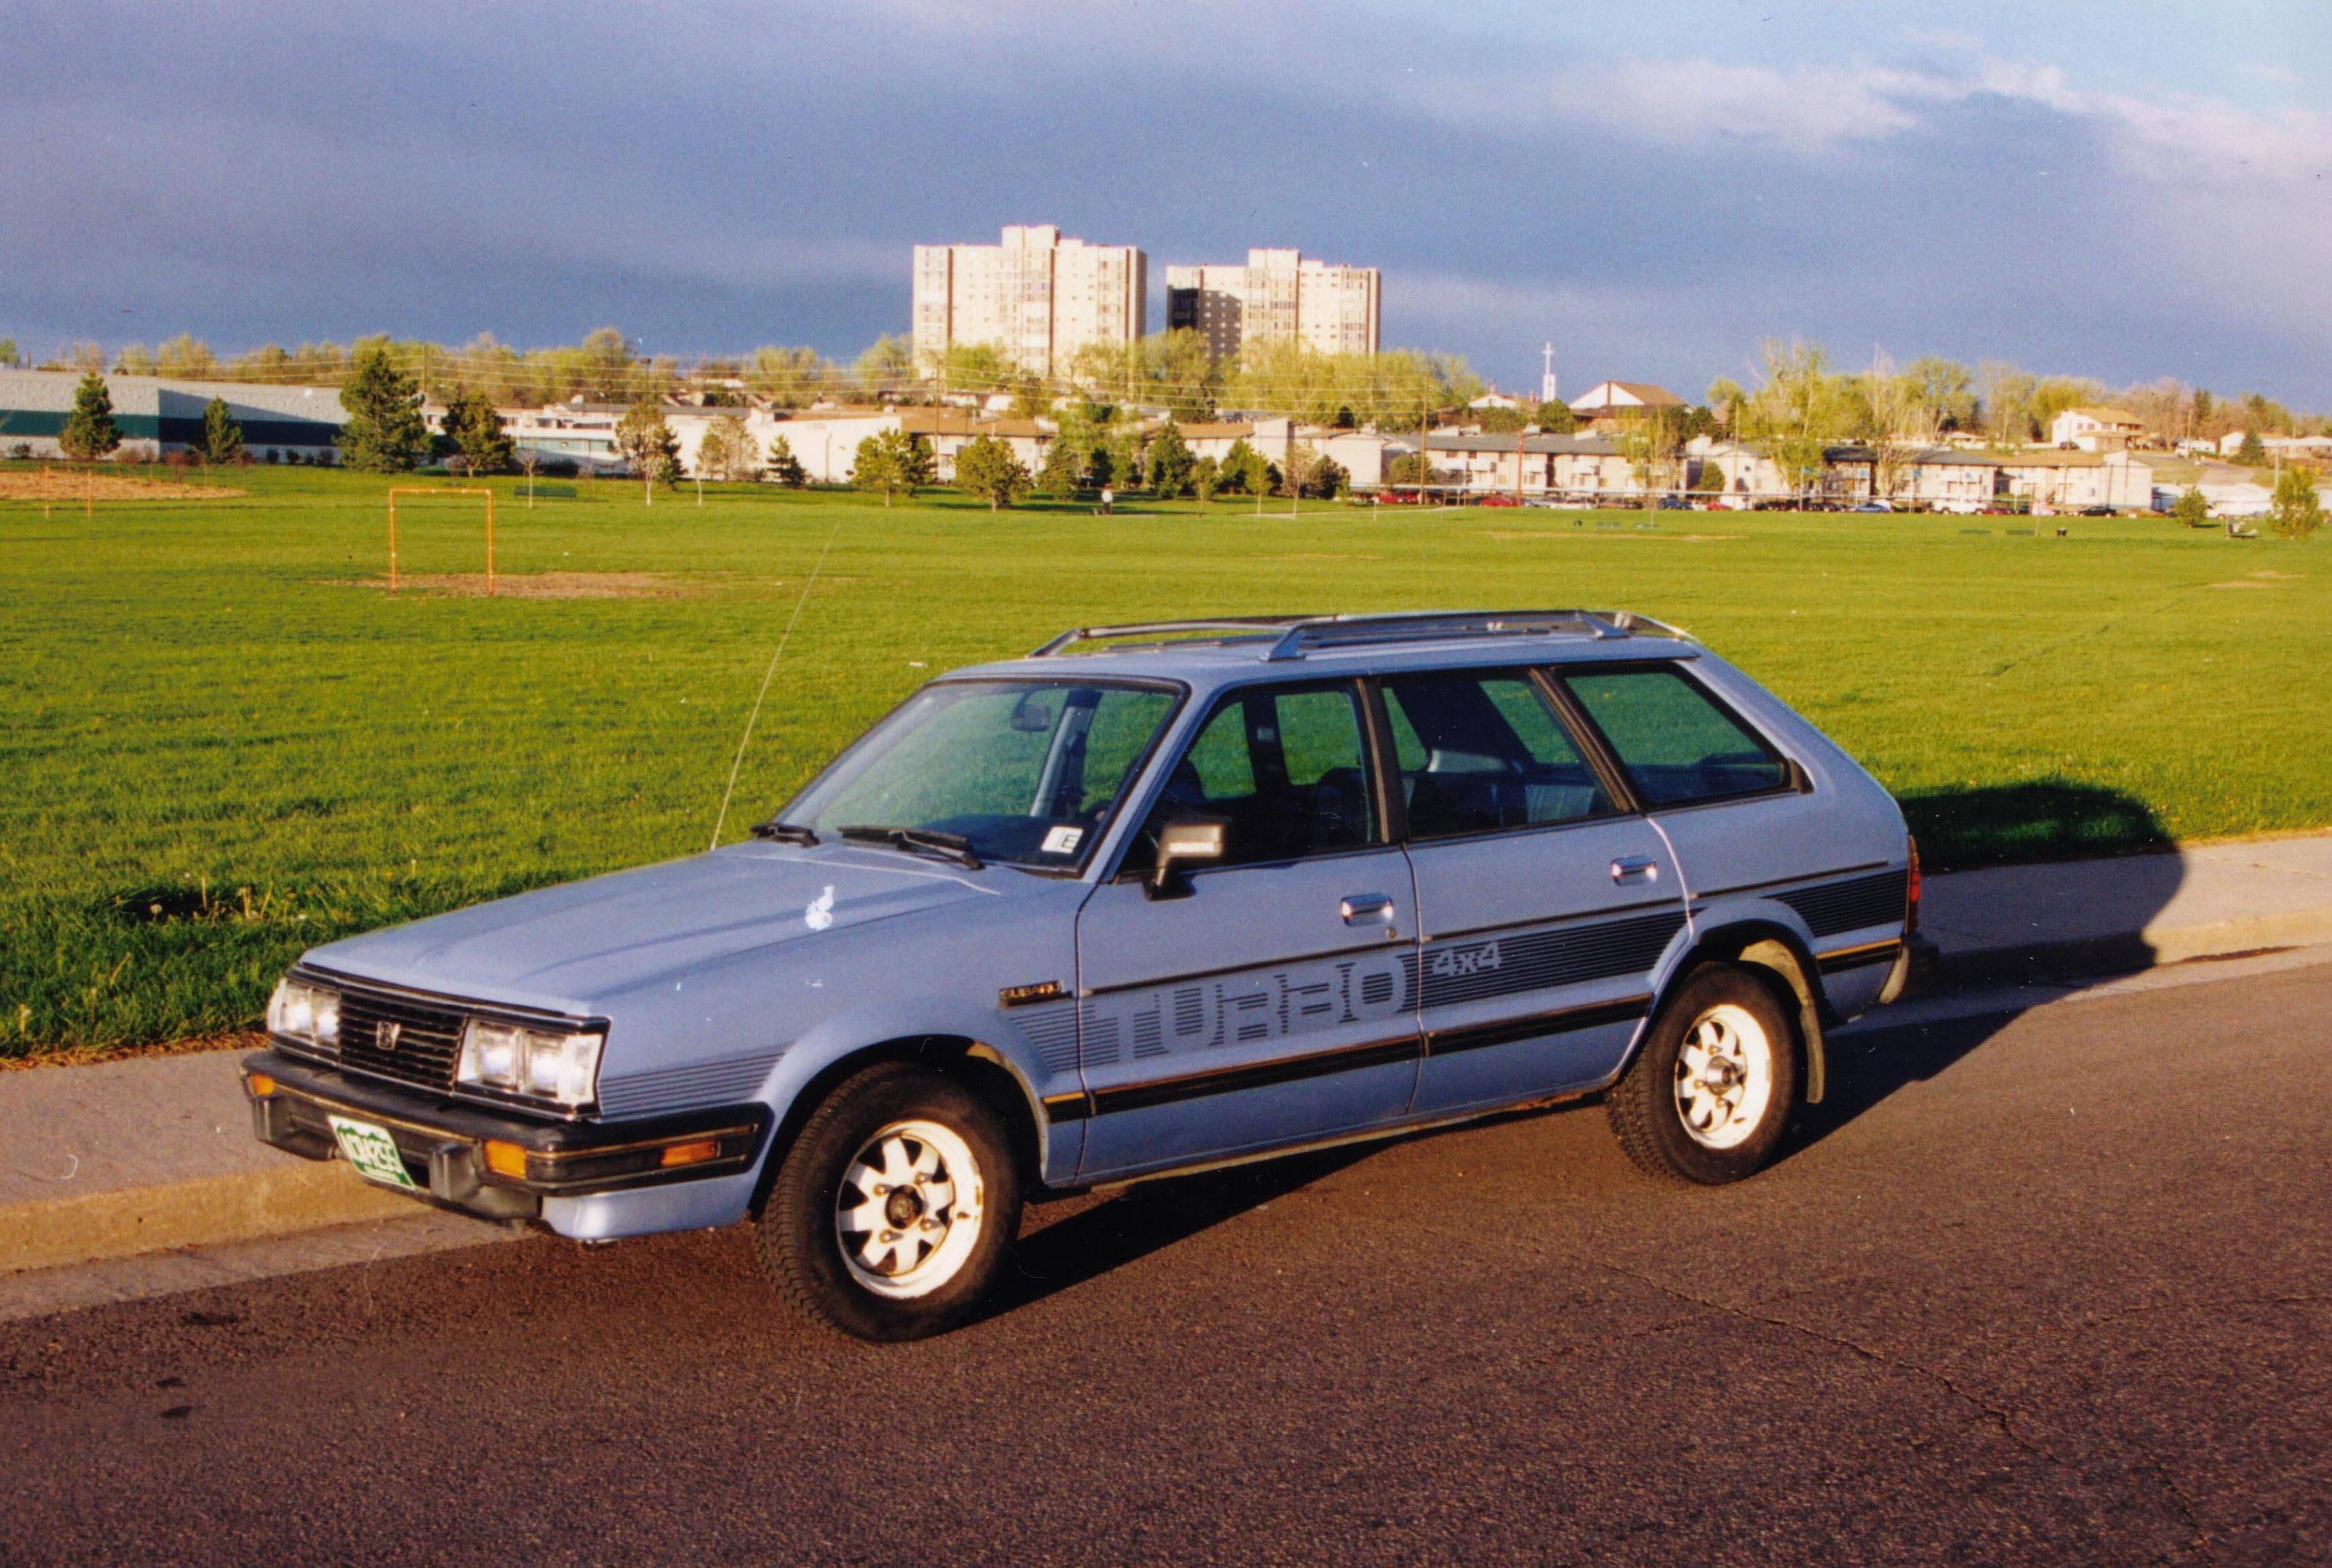 Subaru Leone Wikipedia 2002 Outback Air Conditioning Wiring Diagram Overview